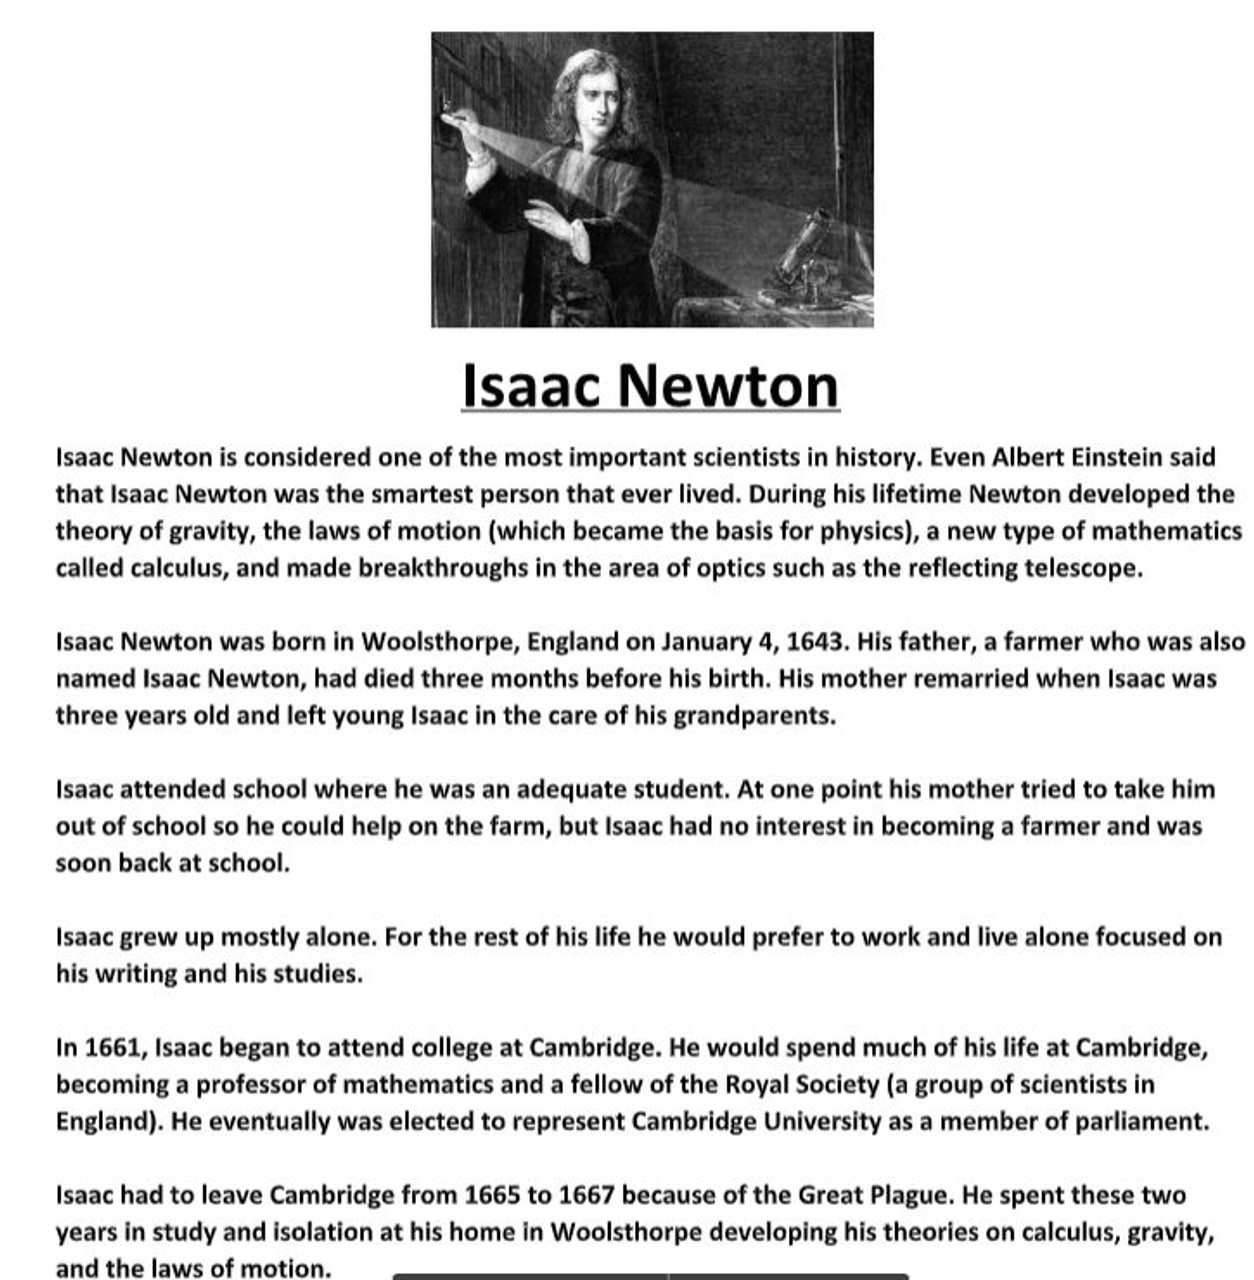 hight resolution of Isaac Newton Biography Worksheet - Amped Up Learning